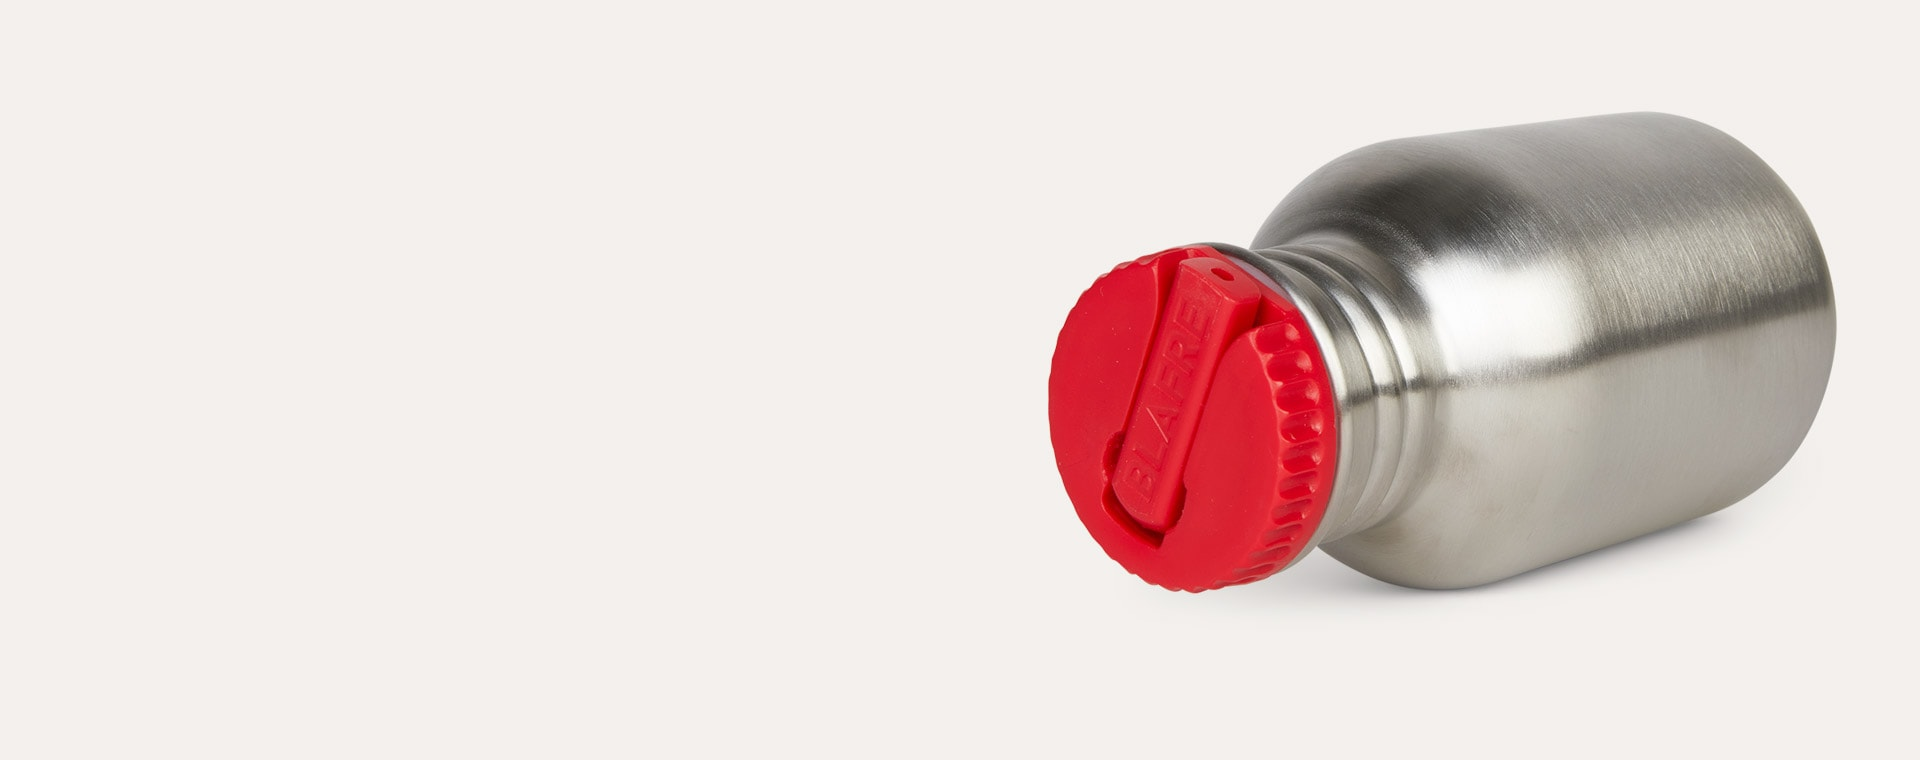 Red Blafre Non Spill Drinking Spout